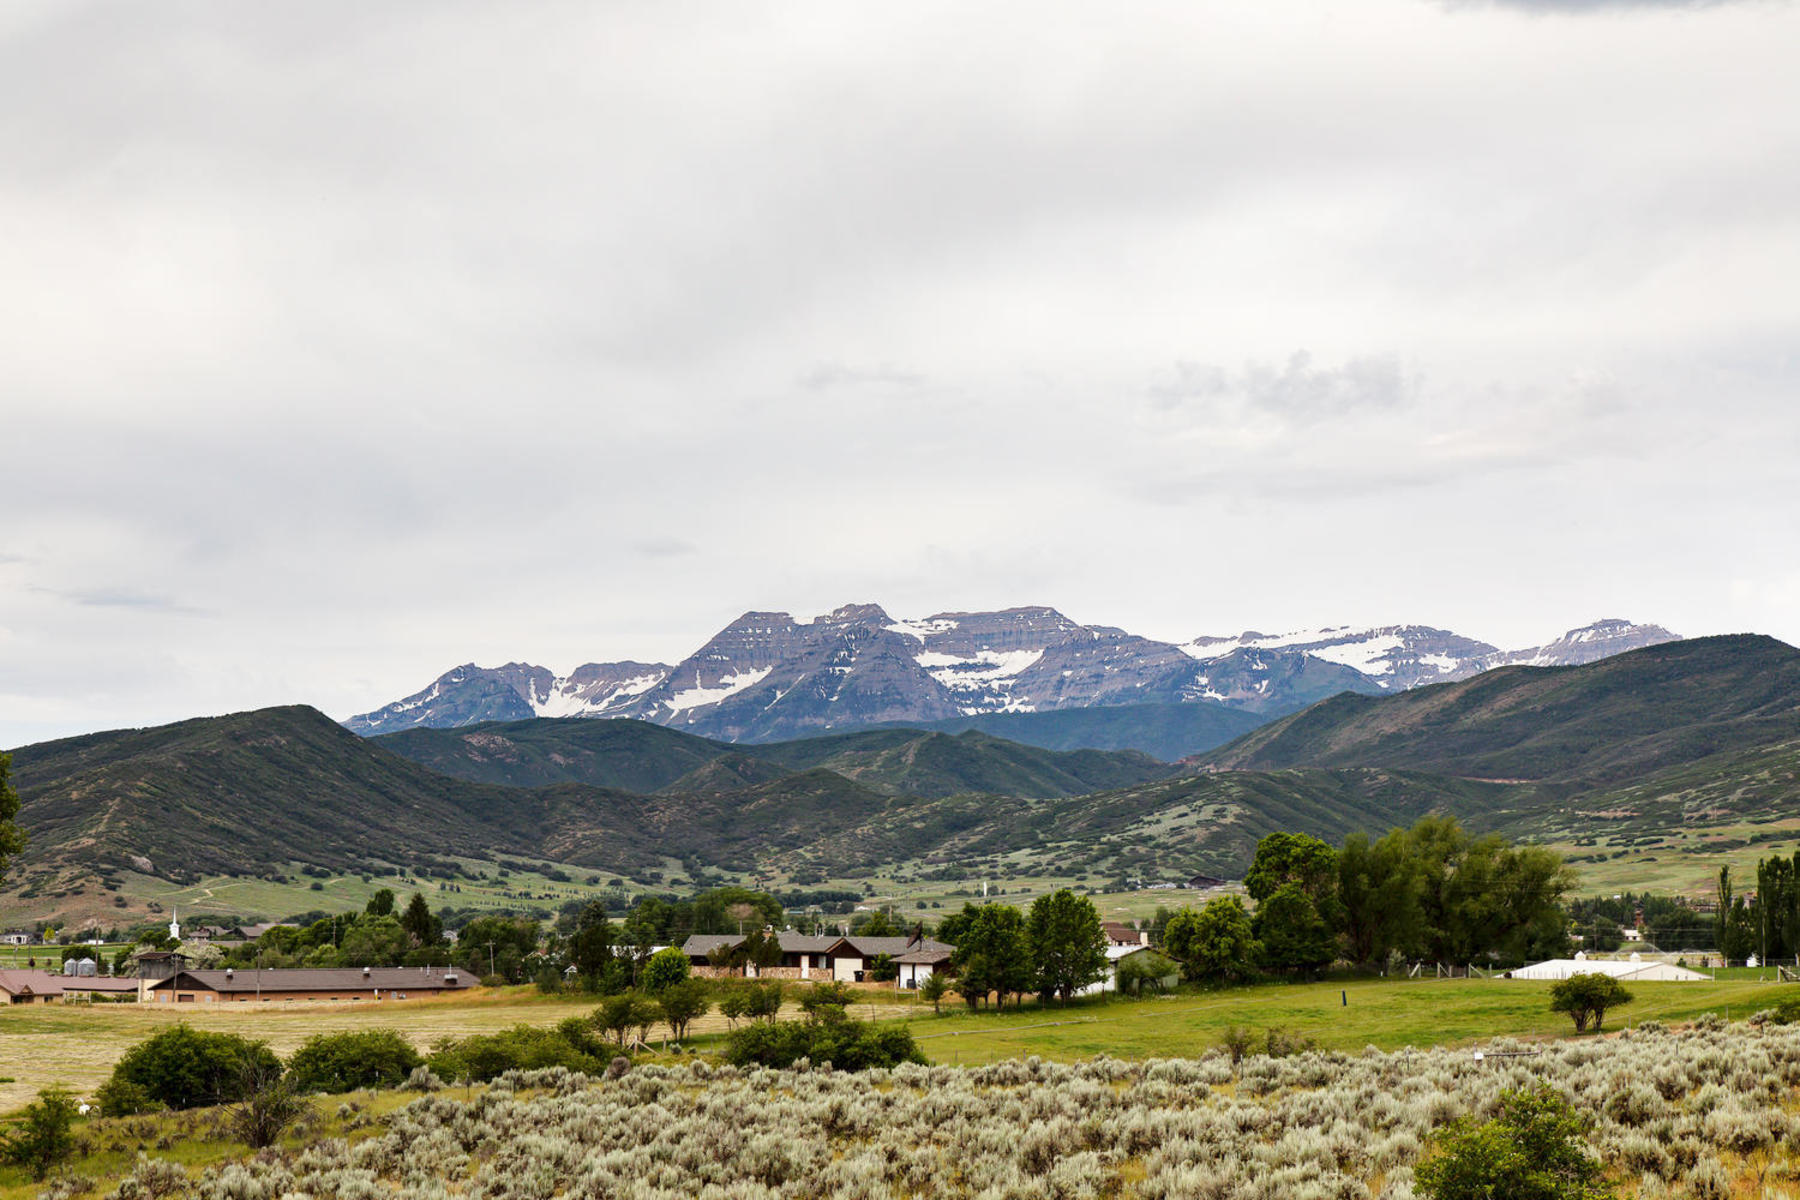 Land for Sale at Beautiful Lot In Midway Crest Lot #4, Fox Den Road, Midway, Utah 84049 United States